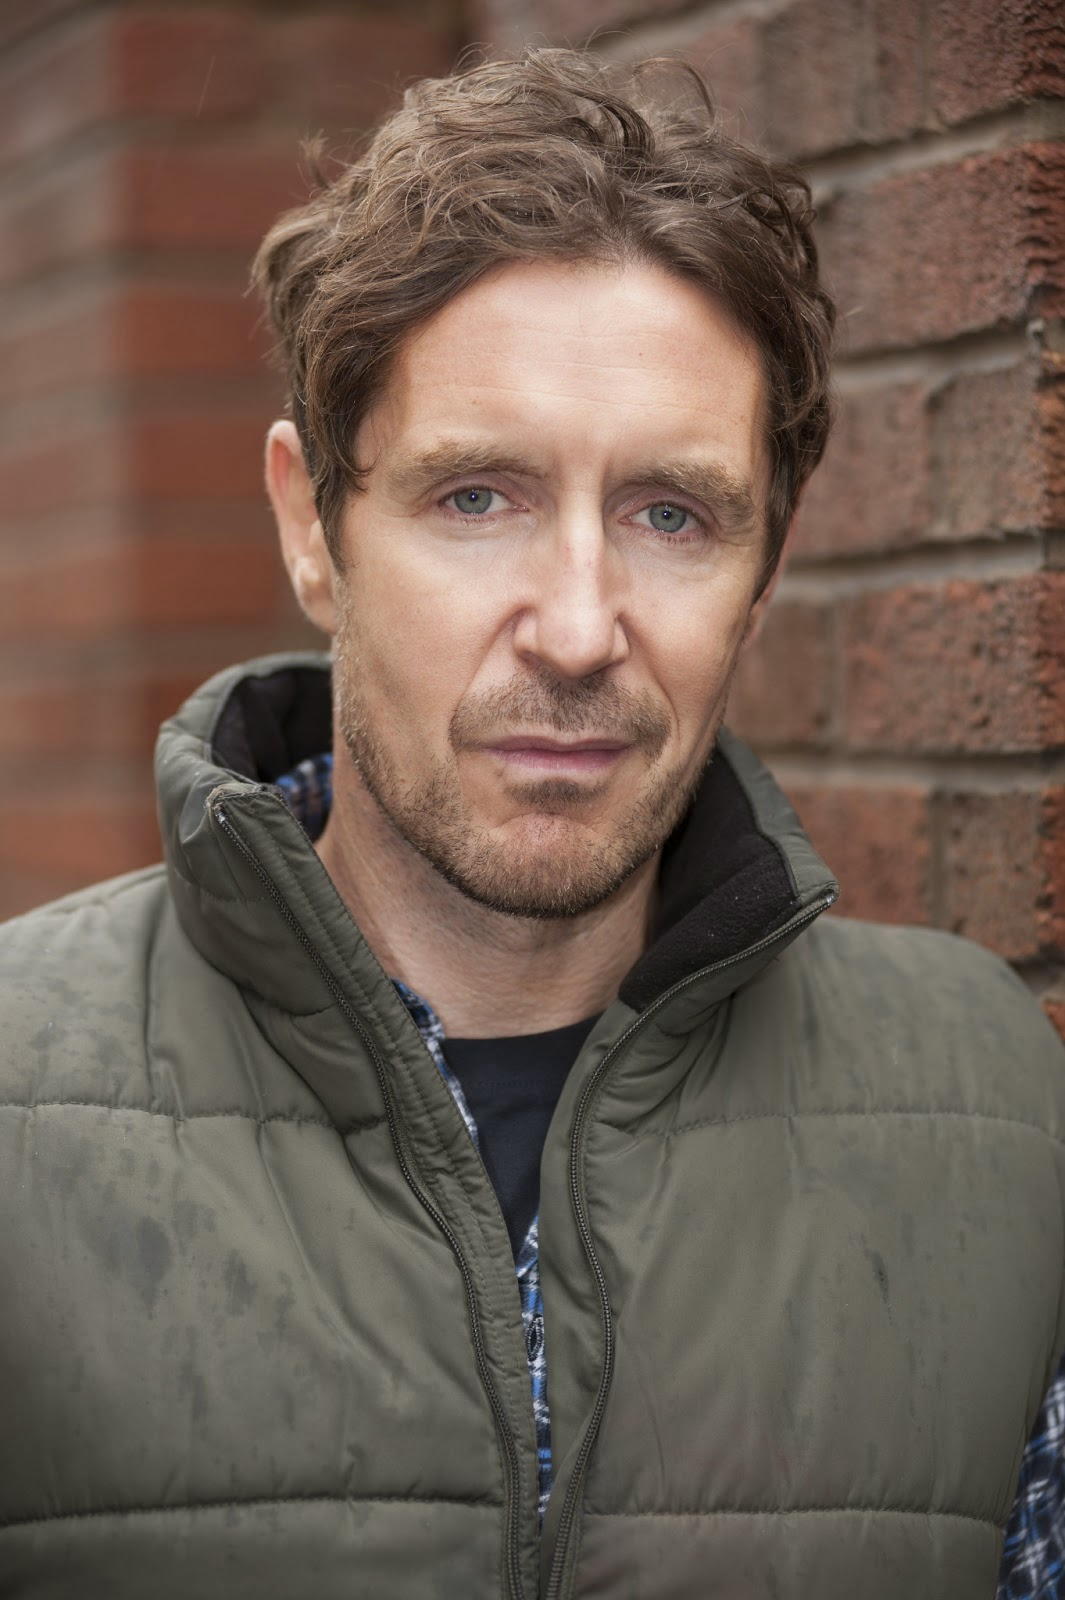 Paul McGann of Luther and Doctor Who fame would be an excellent Marvel Hero